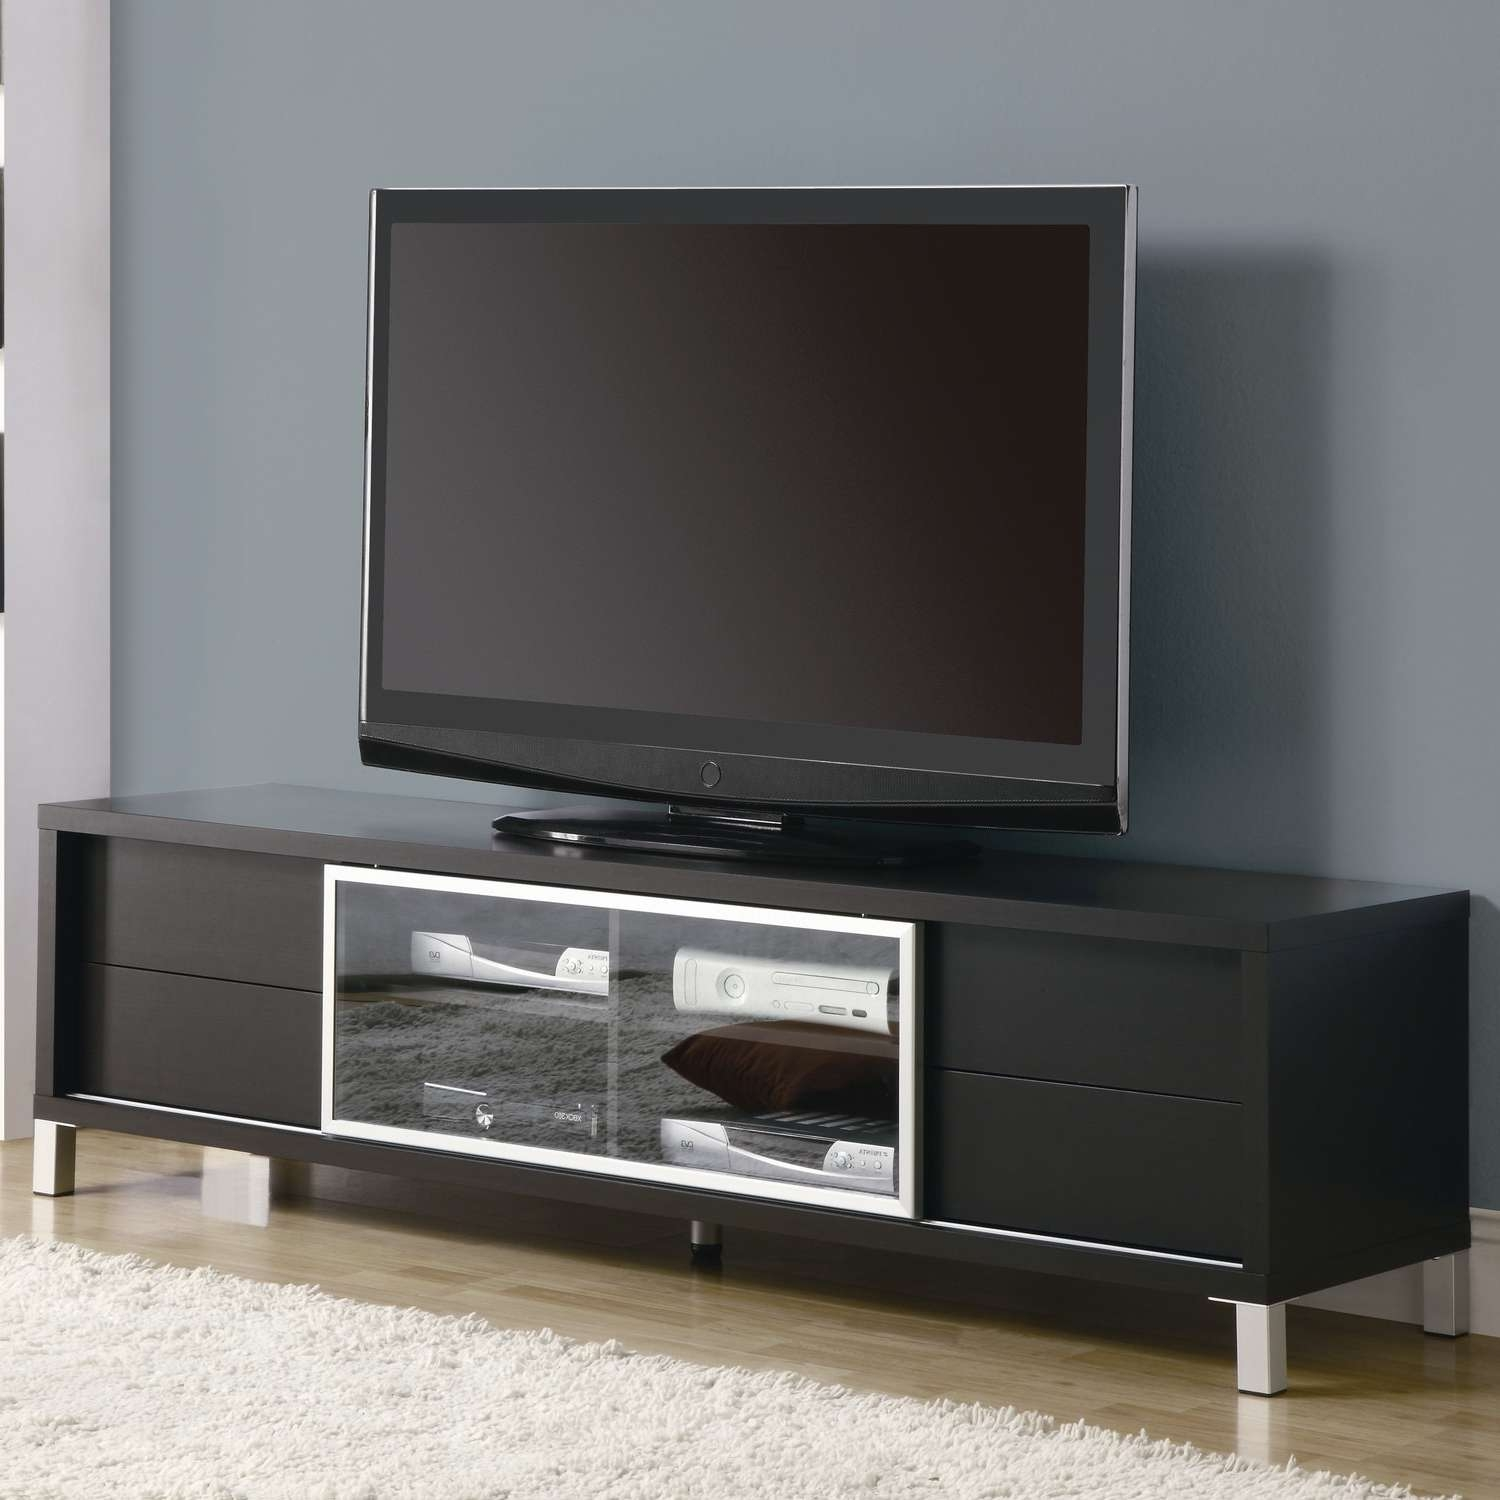 Simple Black Led Tv Right For Unusual Tv Stands On Wood Floor With For Led Tv Stands (View 14 of 20)